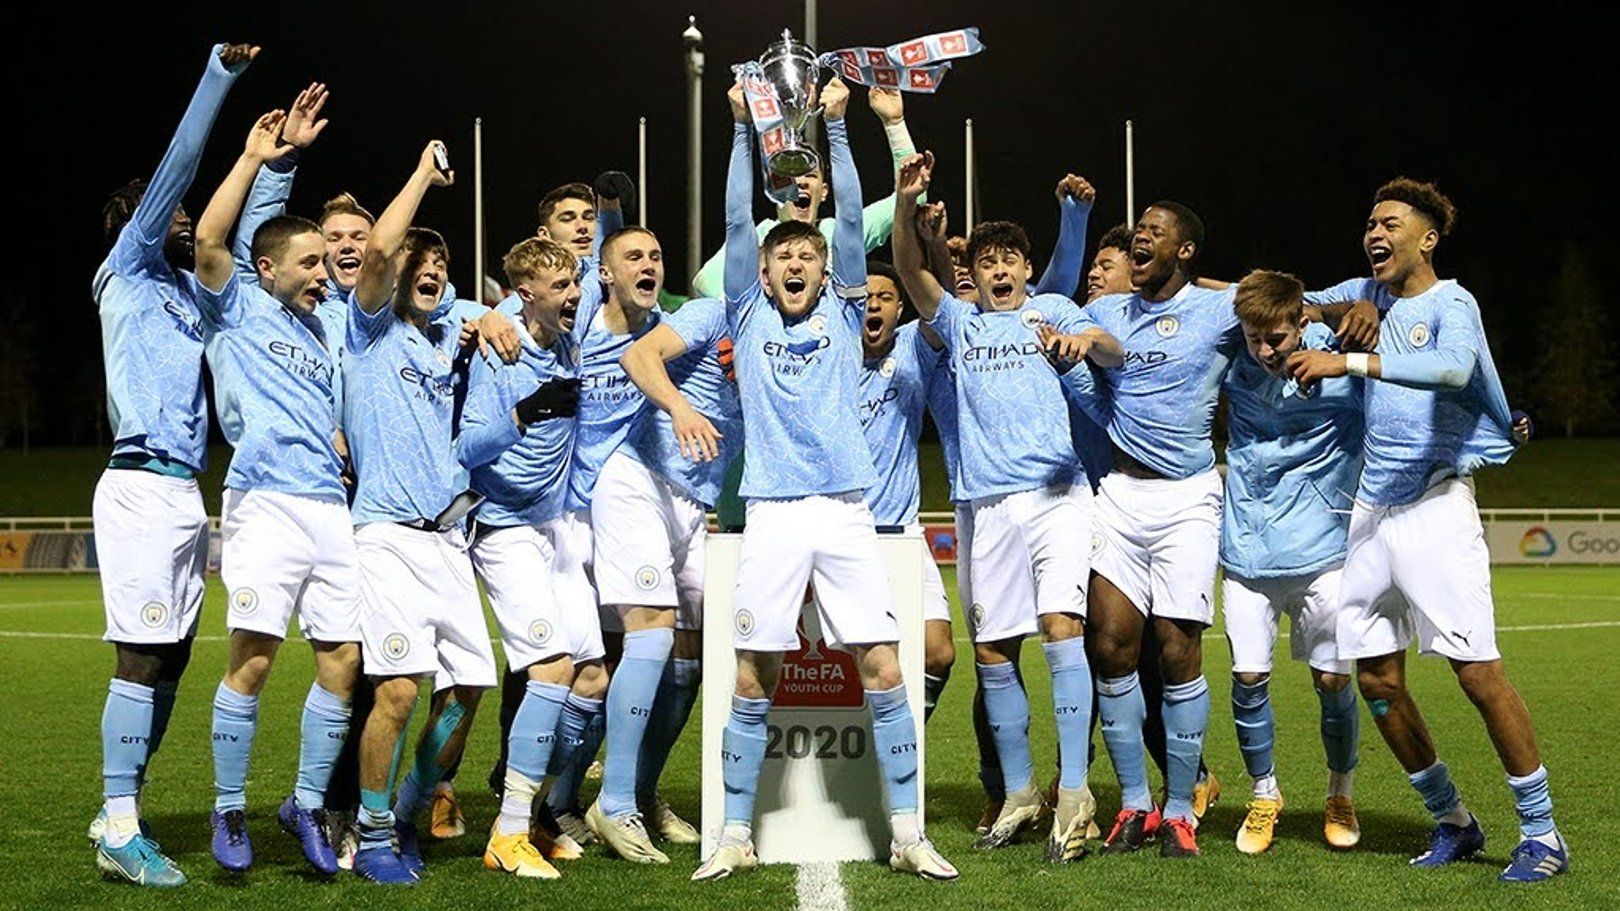 Guardiola pays tribute to FA Youth Cup winning side